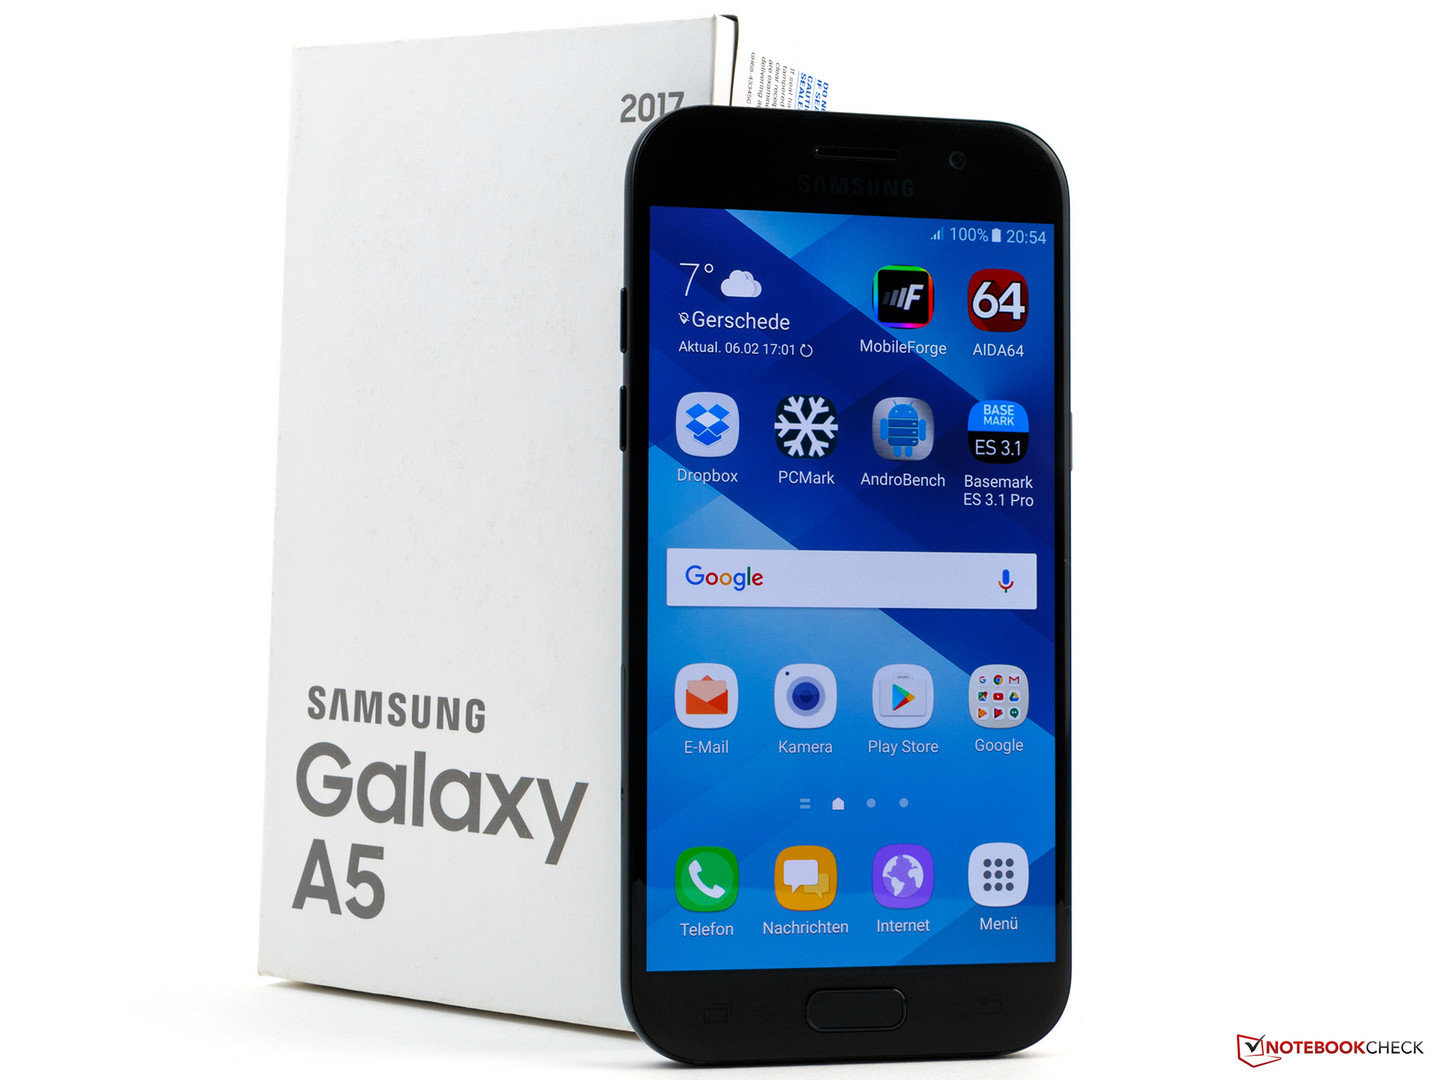 samsung galaxy a5 2017 smartphone review notebookcheck. Black Bedroom Furniture Sets. Home Design Ideas